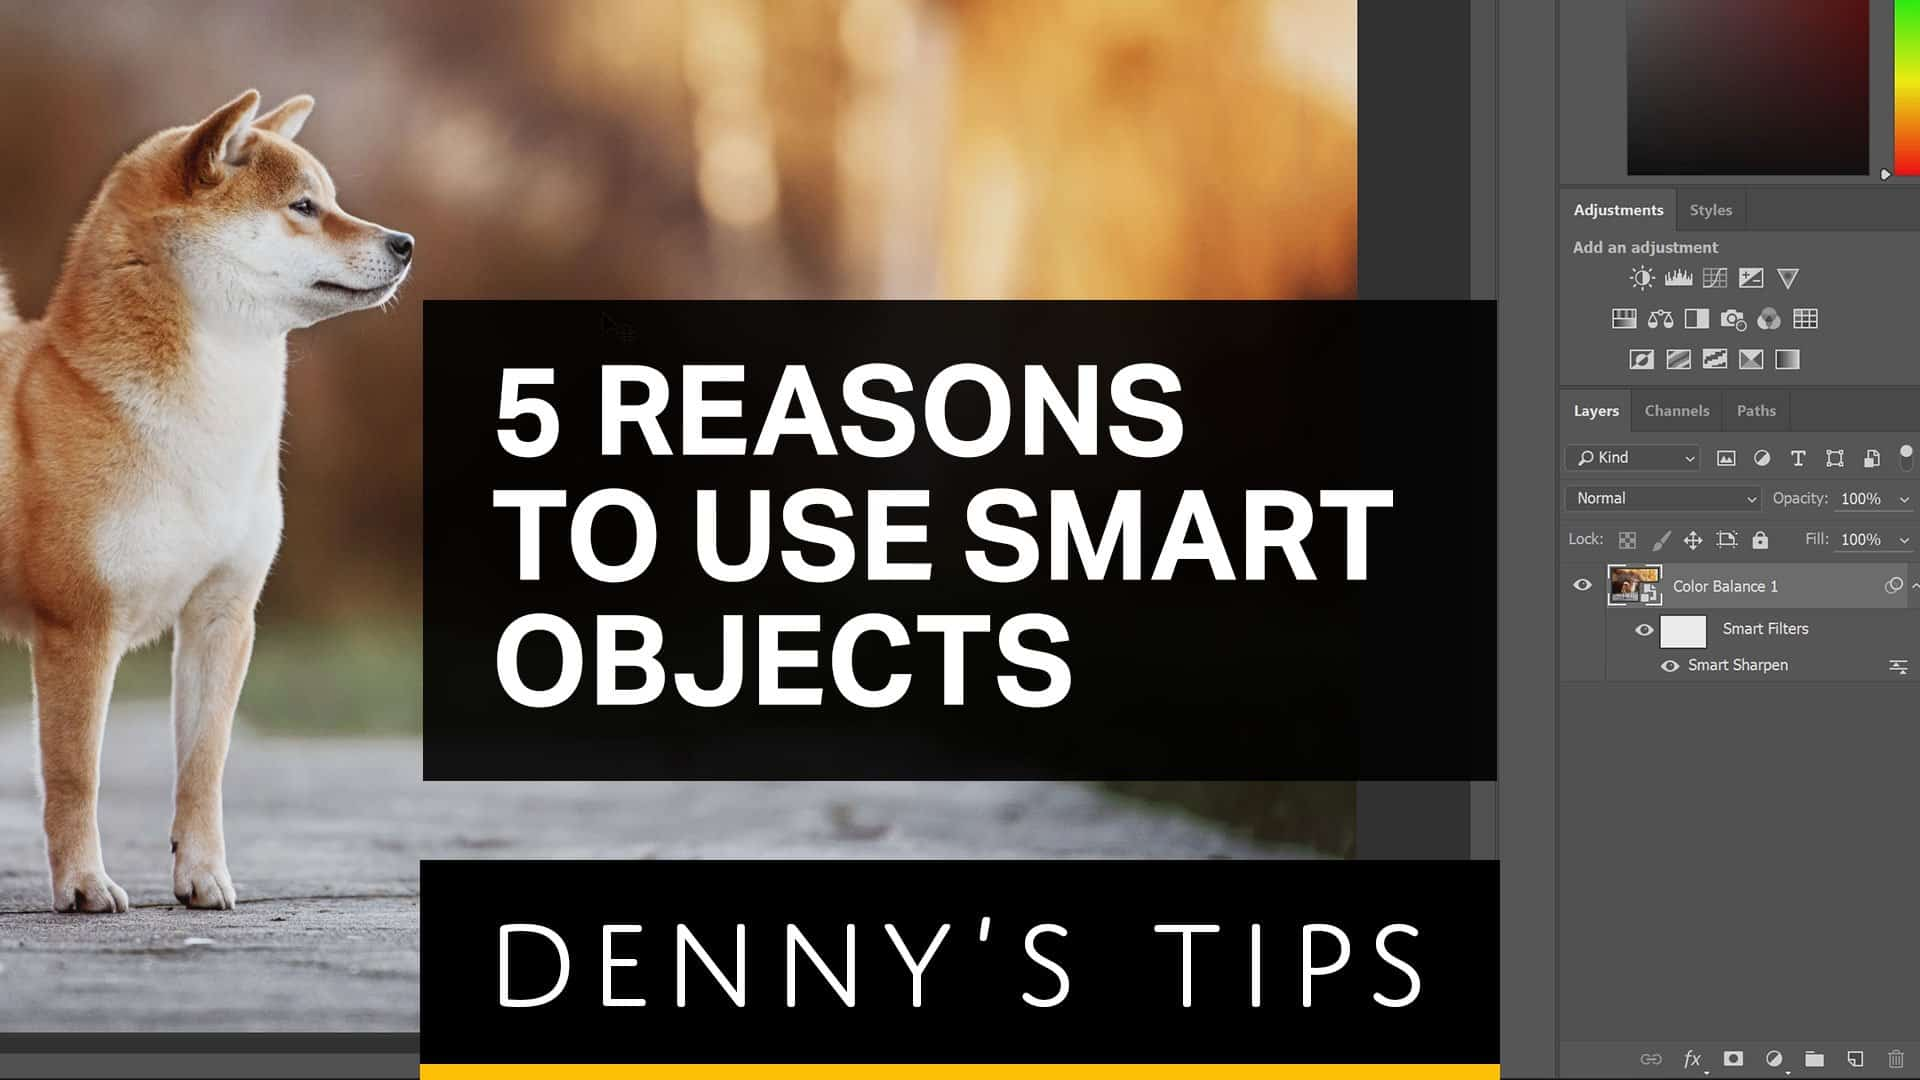 5 Reasons Why Smart Objects are AWESOME